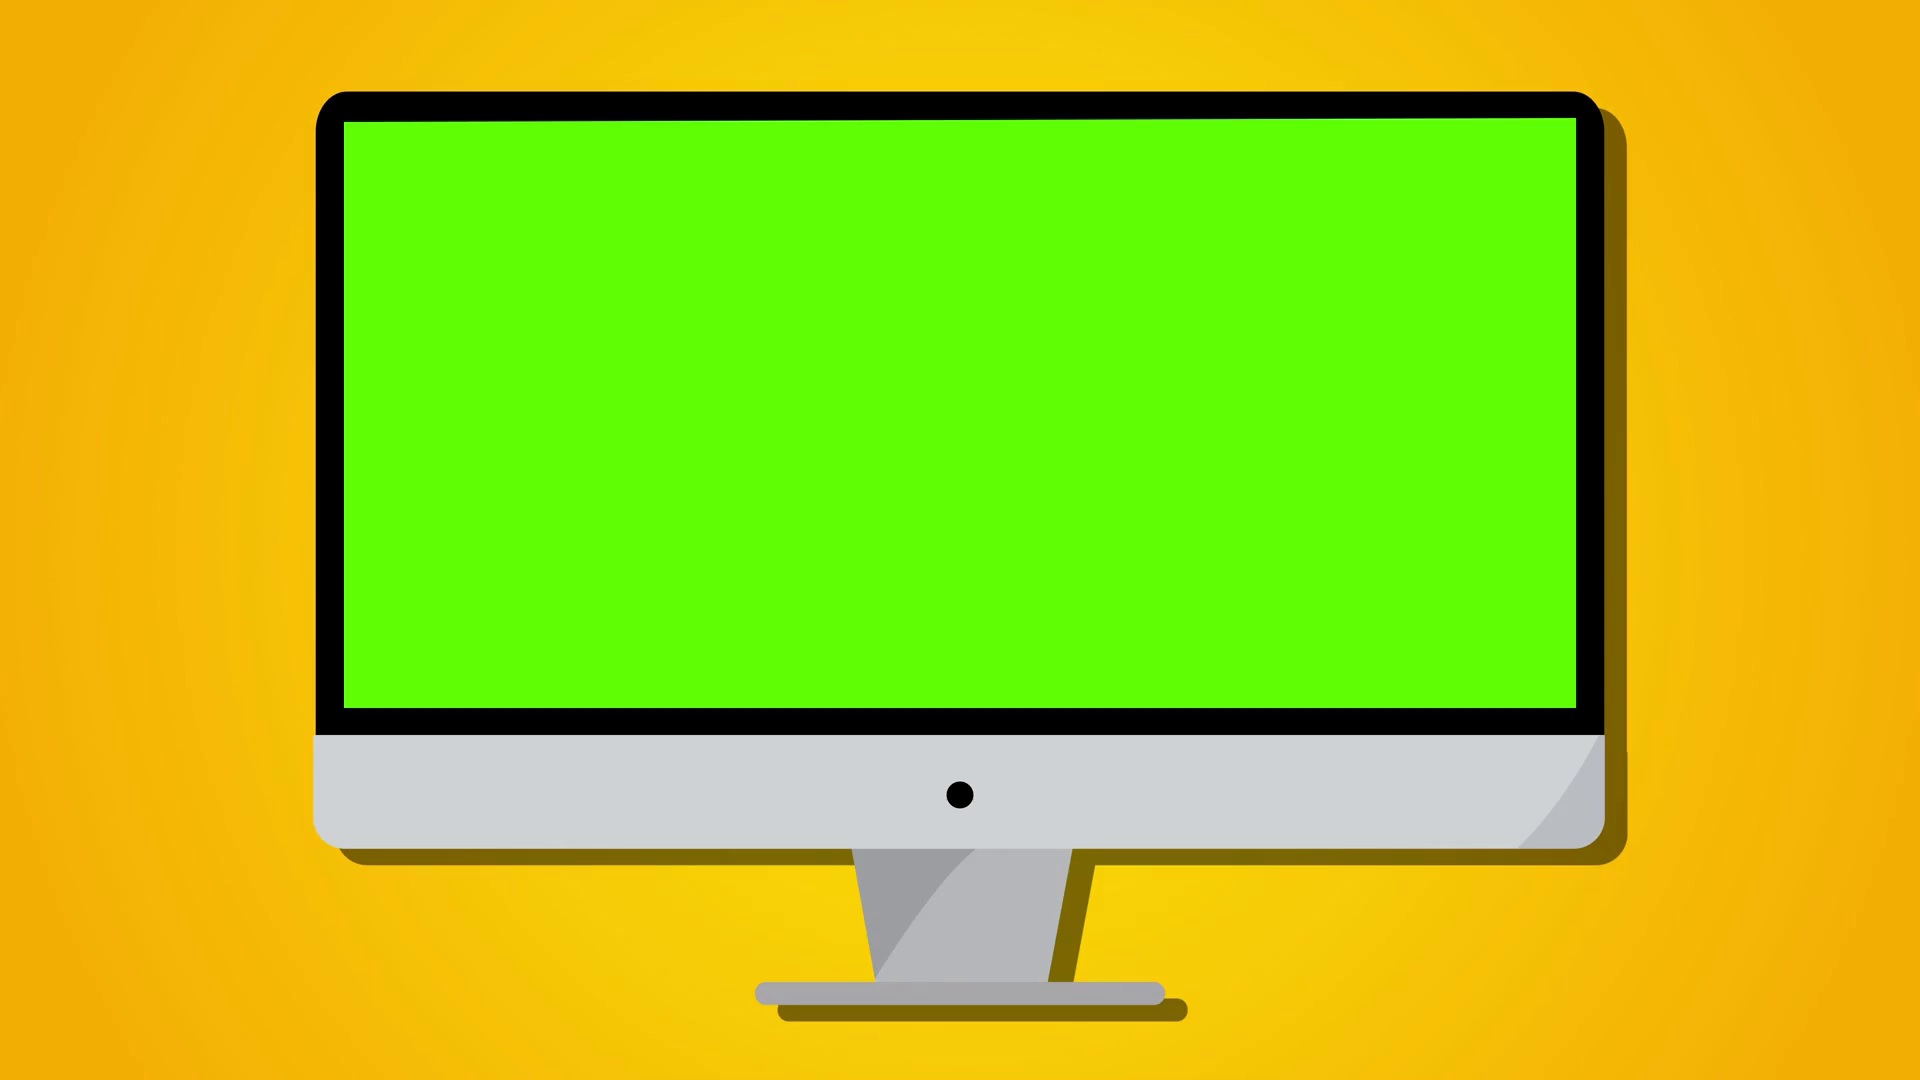 Green screen clipart video royalty free library Computer monitor desk top animation with static in to green screen, keyable  Motion Background - Storyblocks Video royalty free library